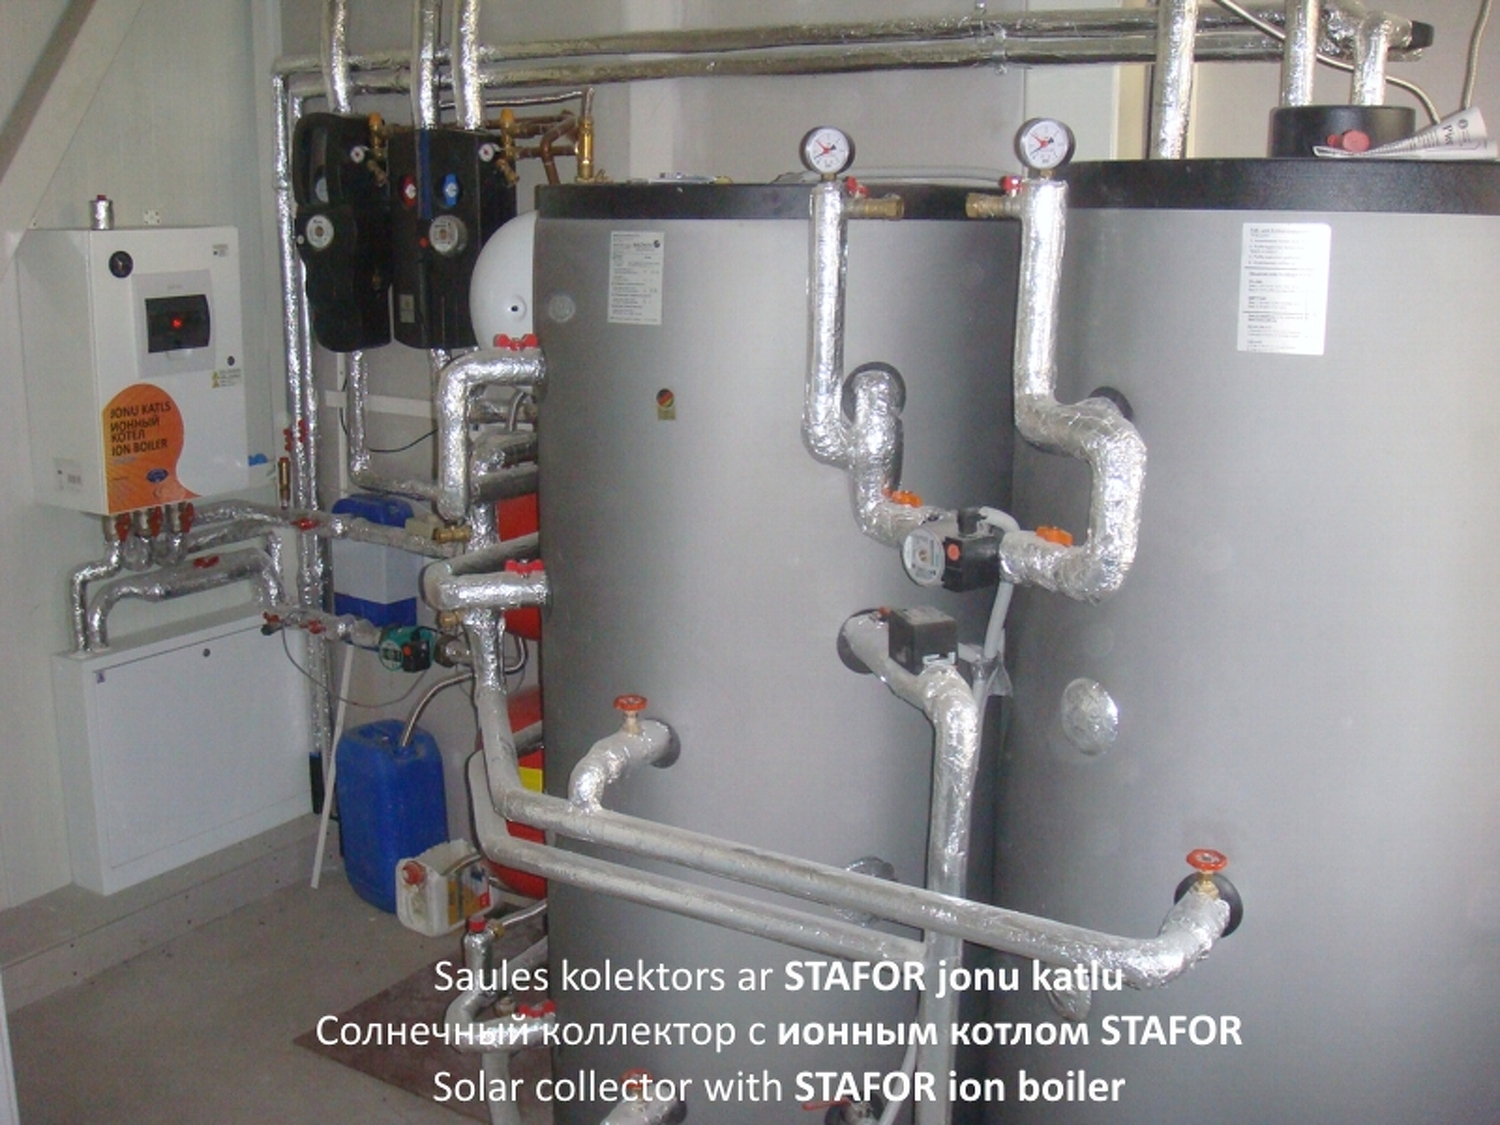 Heating ion boiler STAFOR with solar collectors